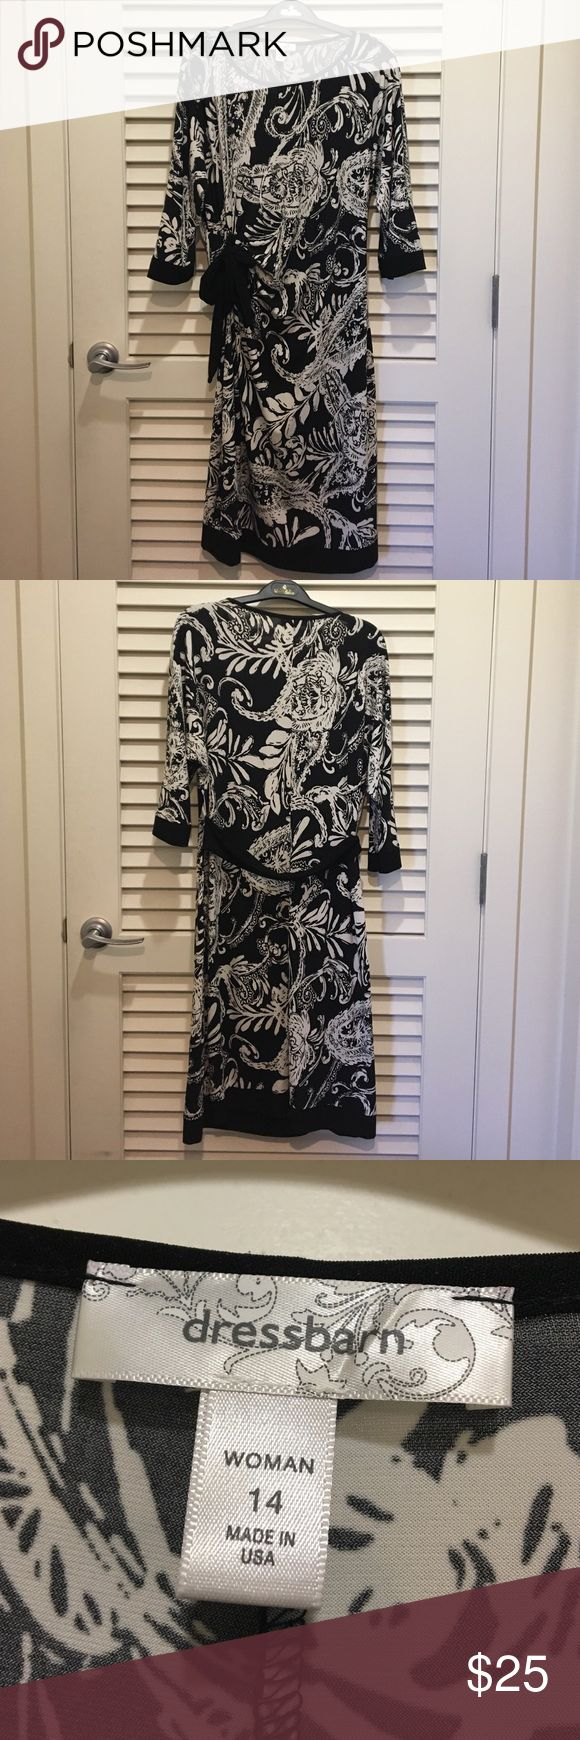 Black and white jersey dress Black and white jersey dress good for any occasion Dress Barn Dresses Midi